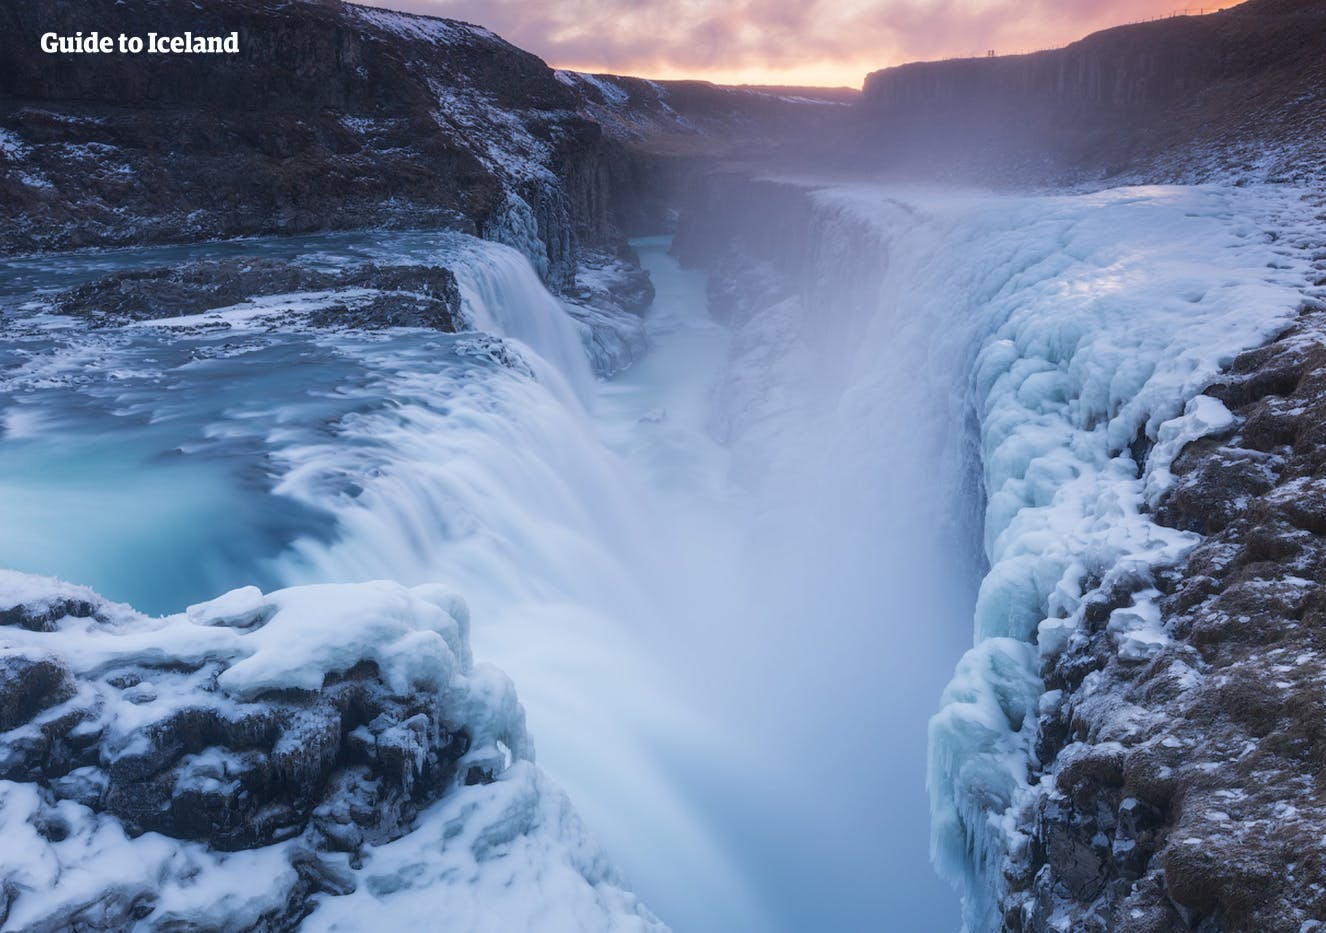 6 Day Guided Winter Tour   Highlights of South, East & North Iceland